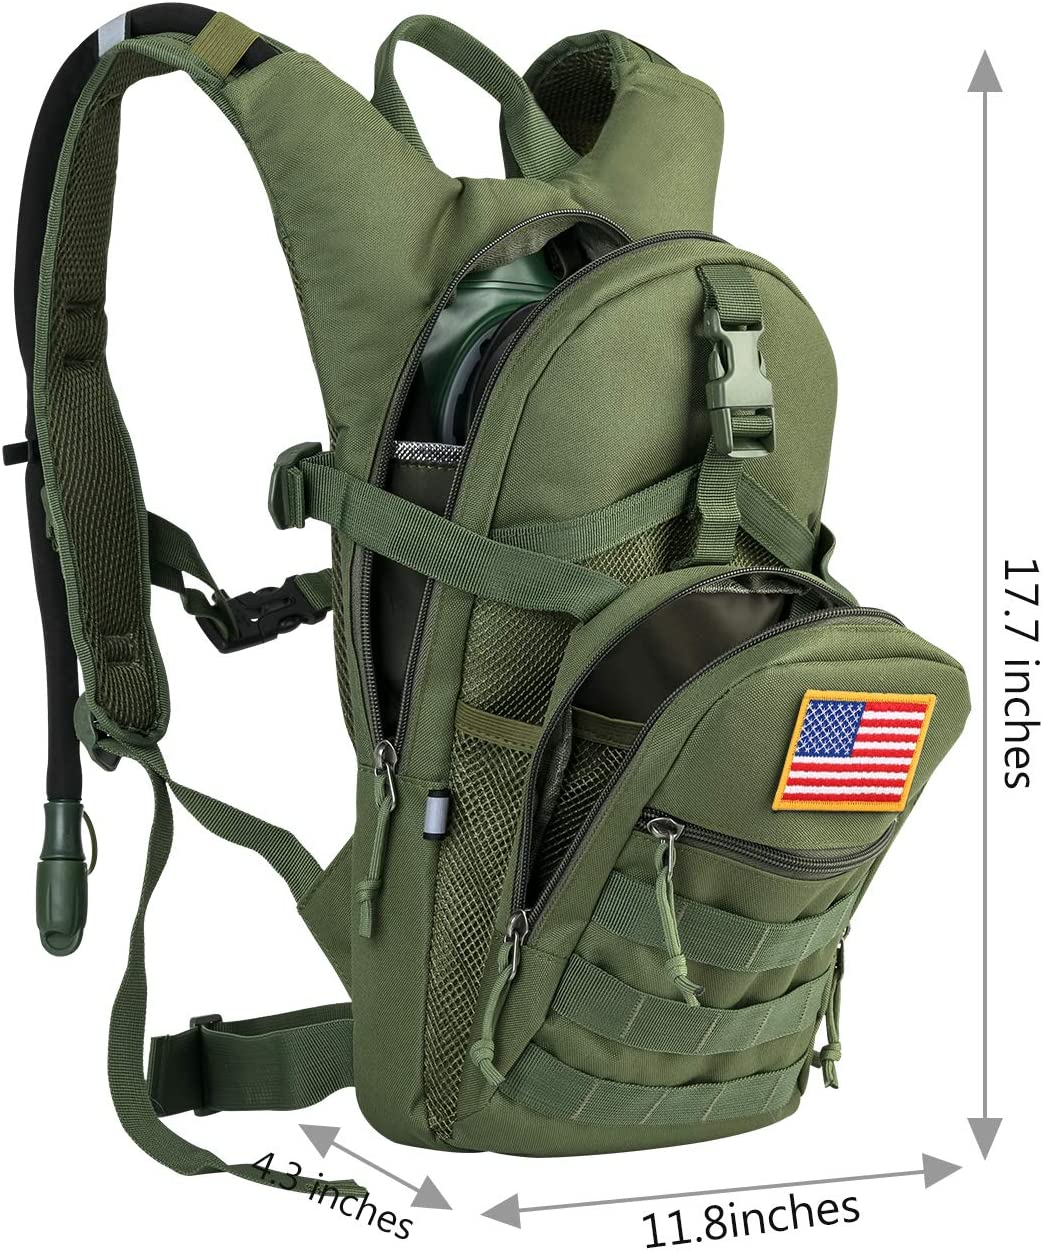 MOLLE Tactical Assault Pack for Hiking Biking Running Walking Climbing Outdoor Travel Gelindo Military Tactical Hydration Backpack with 2L Water Bladder Light Weight